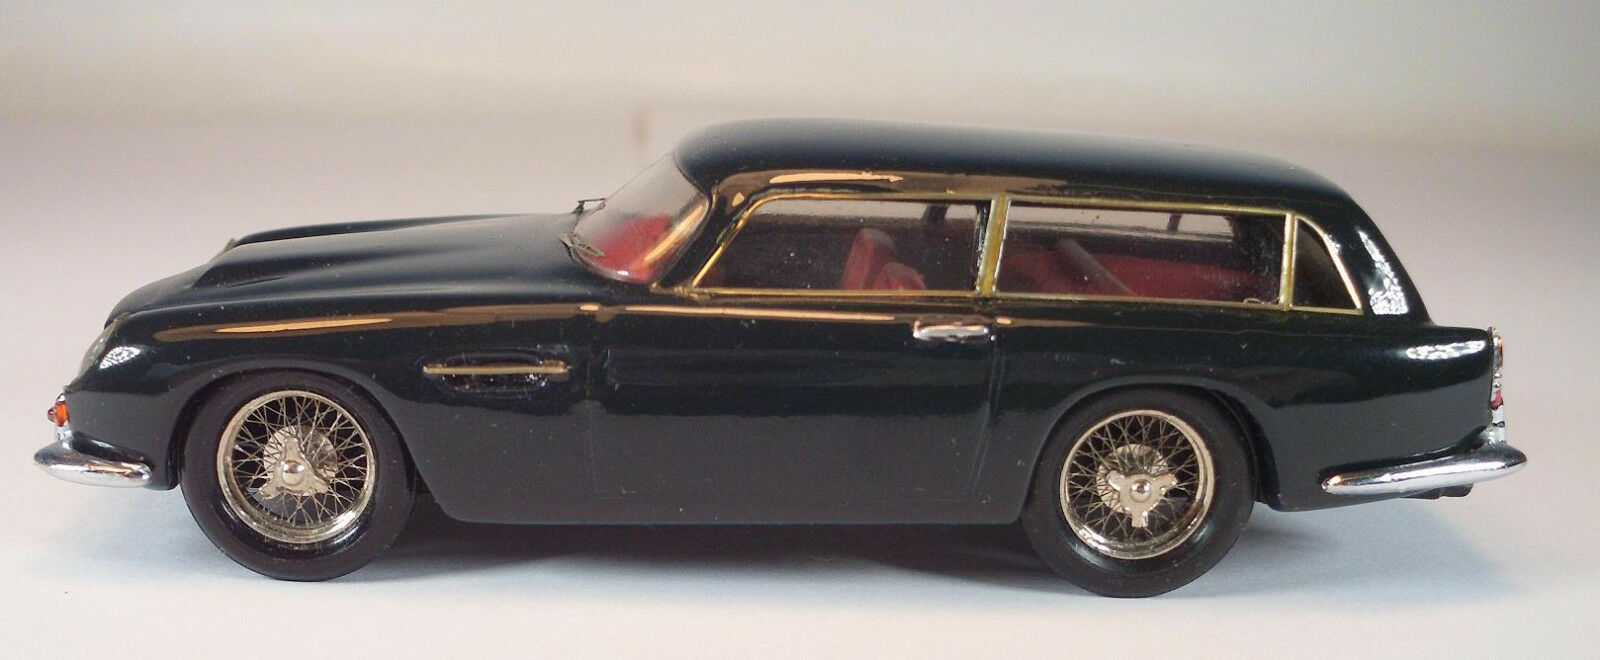 1 43 Aston Martin DB 5 MAGUETTE A. metroz Provence Moulage